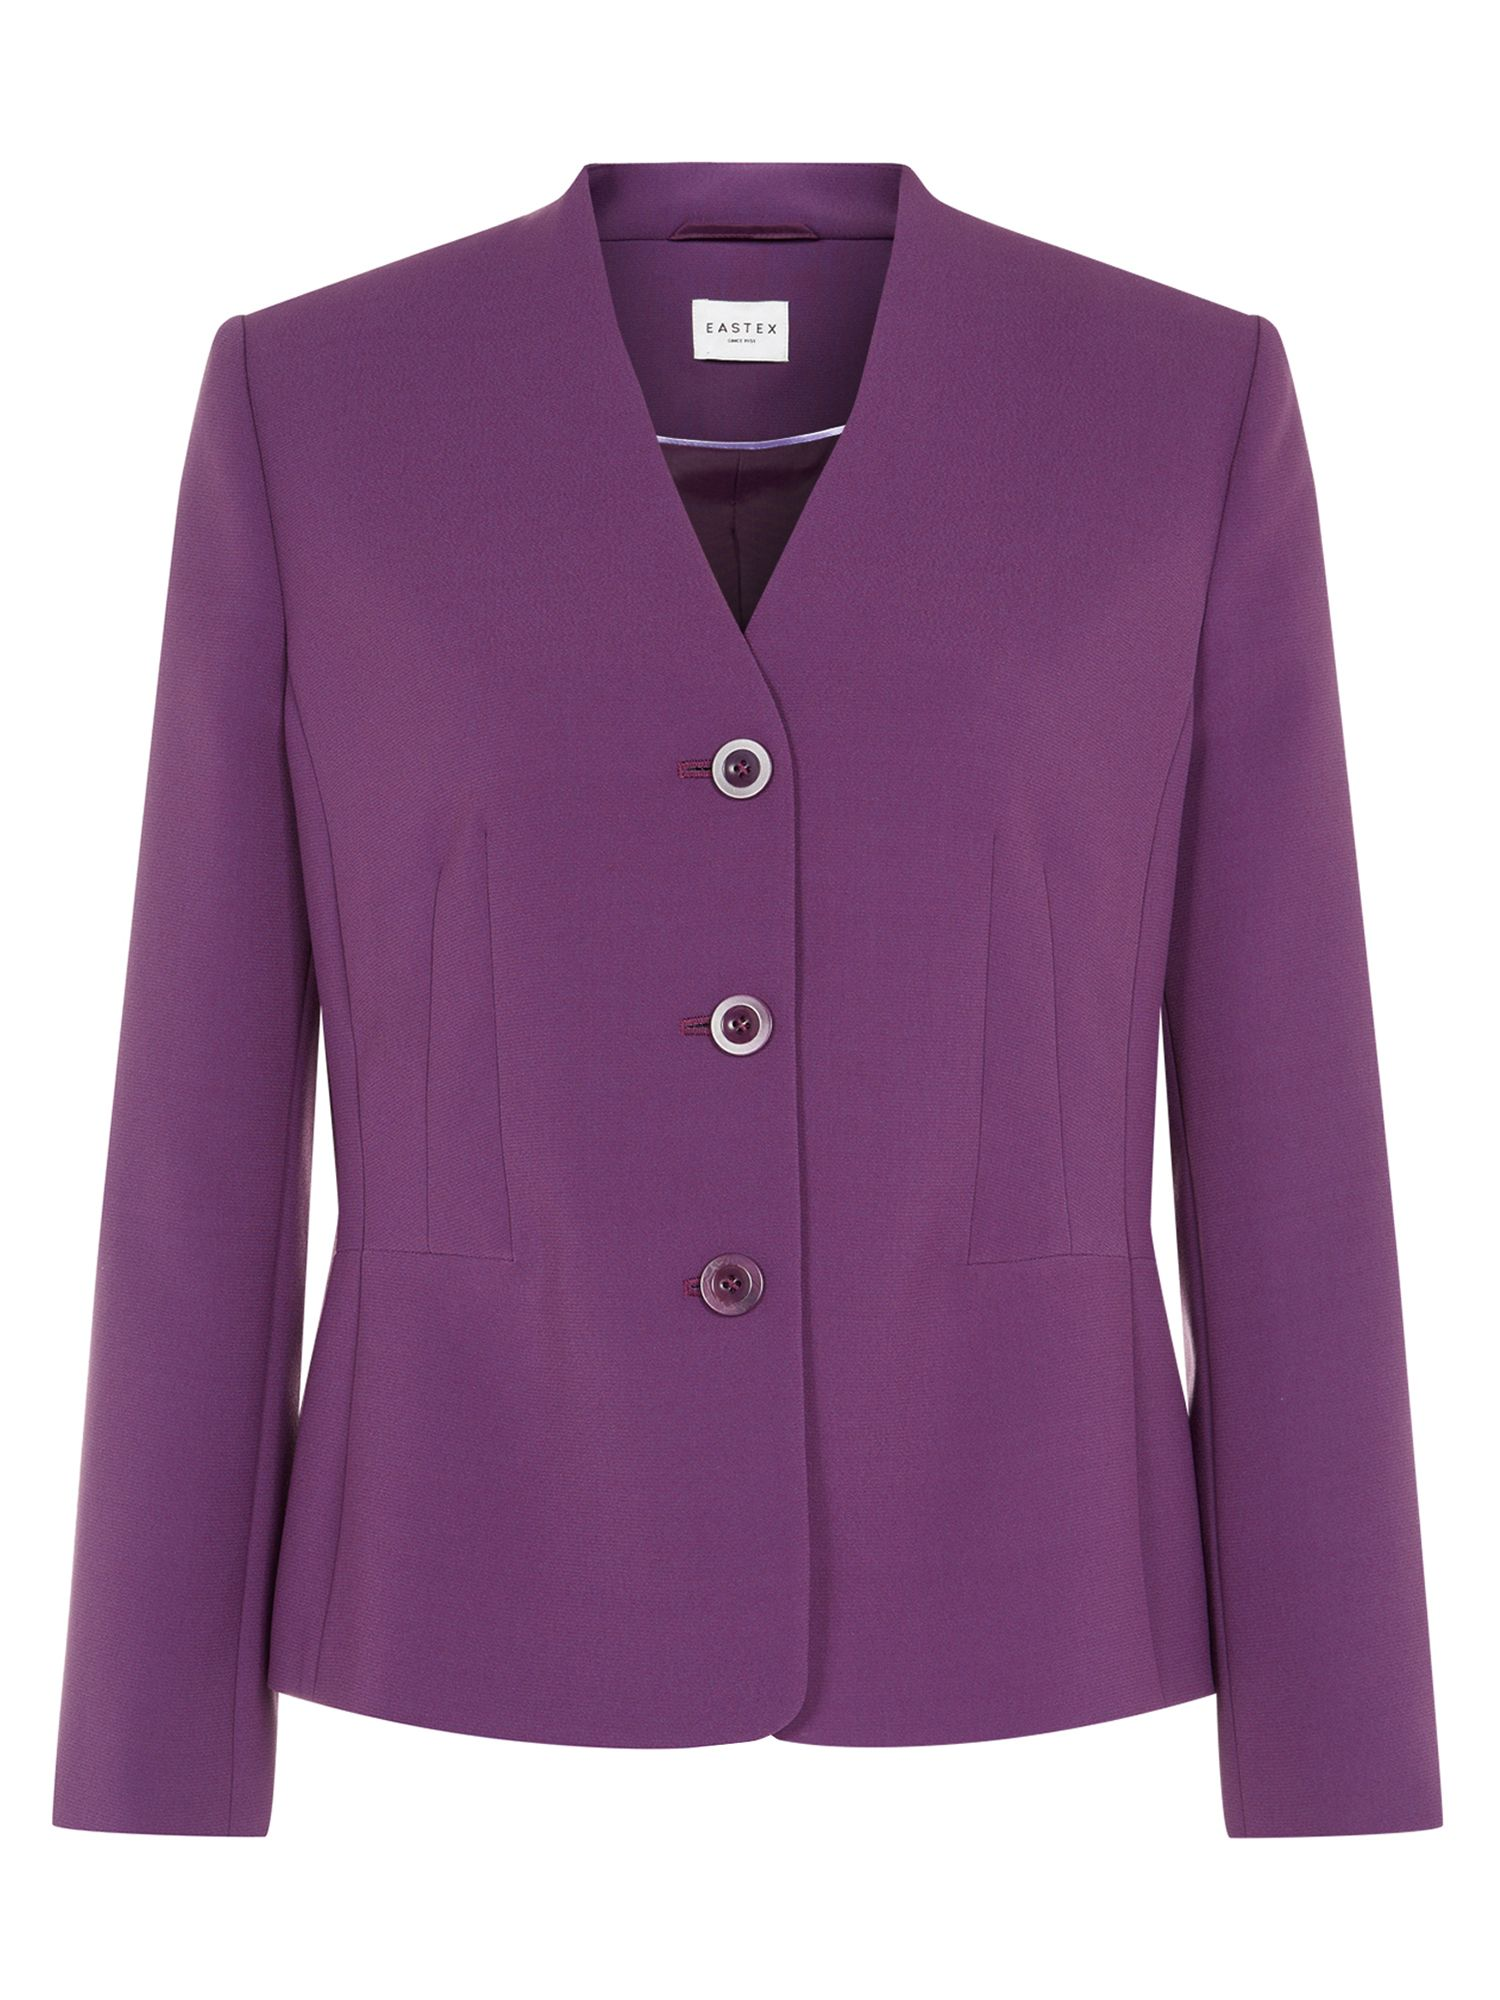 Grape tailored jacket